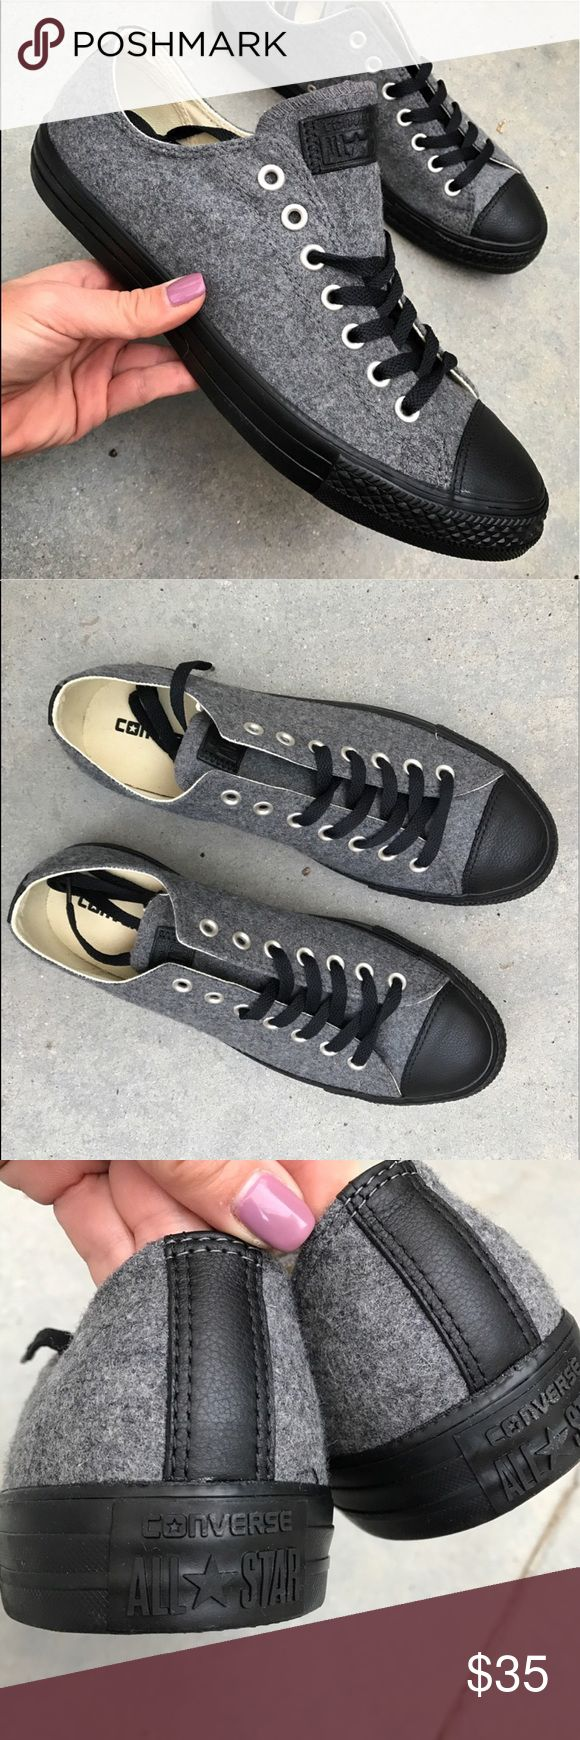 NWOB | CHUCK TAYLOR ALLSTAR LOW SZ 9.5 MEN NWOB 👣 CHUCK TAYLOR ALL STAR CONVERSE. One of each size available. Size 9.5 men's   RARE | Take your chucks game to a whole new level with these. 👣 GREY FELTED WOOL. BLACK LEATHER TOE SHELL & ACCENTS. BEAUTIFUL QUALITY.  Ships same or next day from my smoke free home. No box. Will be shipped securely.   Bundle items to save. Shop with posh and don't pay the sales tax! 🤑  100% AUTHENTIC AND DIRECT FROM CONVERSE. Converse Shoes Sneakers